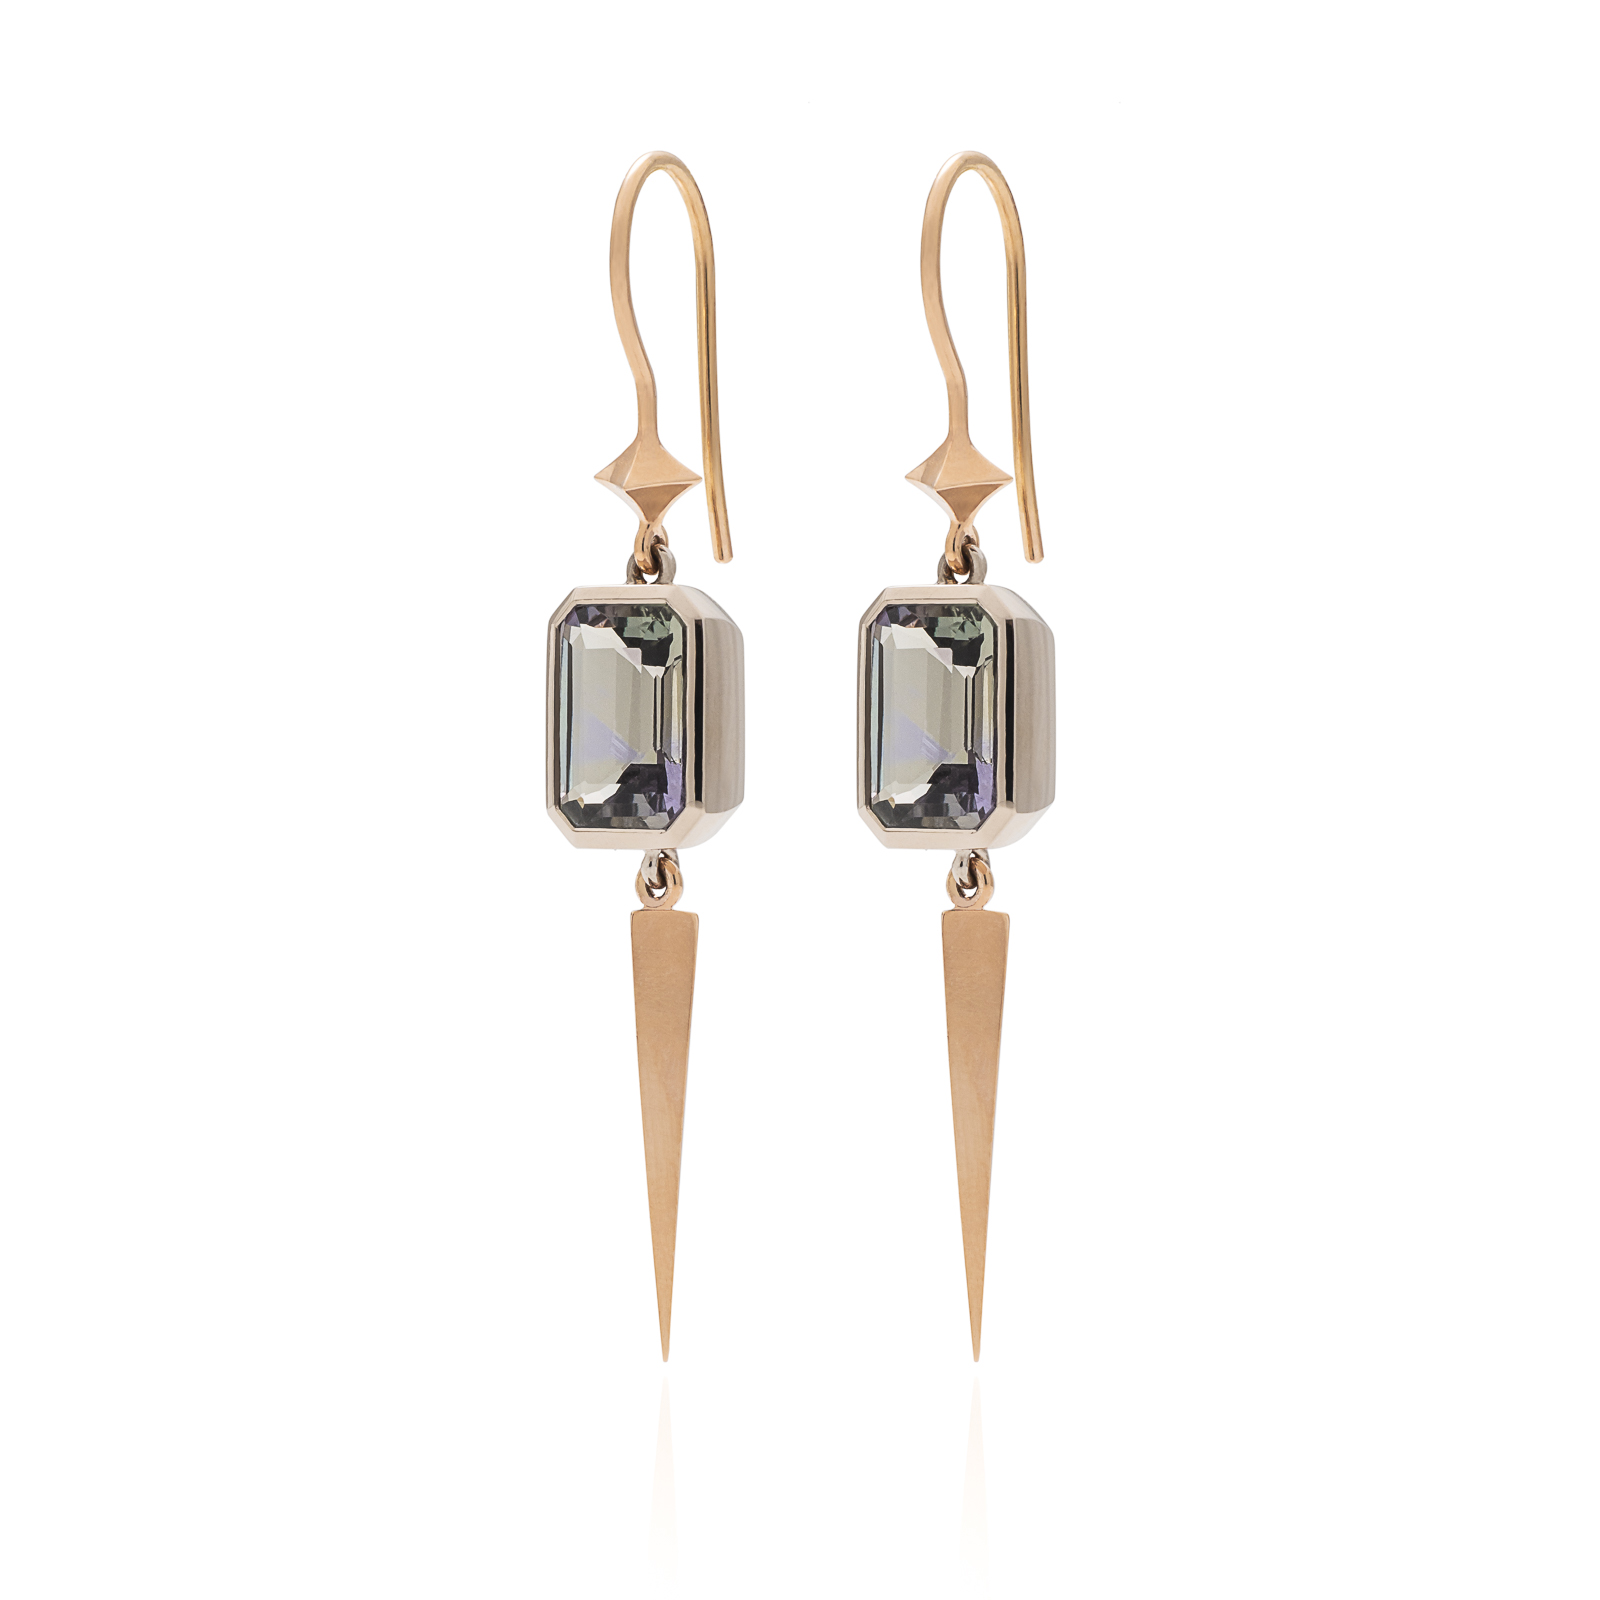 Sword of Truth - Natural coloured Tanzanites (5.35ct) set in 18k white and rose gold.These earrings have their very own sword tassels to cut through the things that don't serve you anymore.